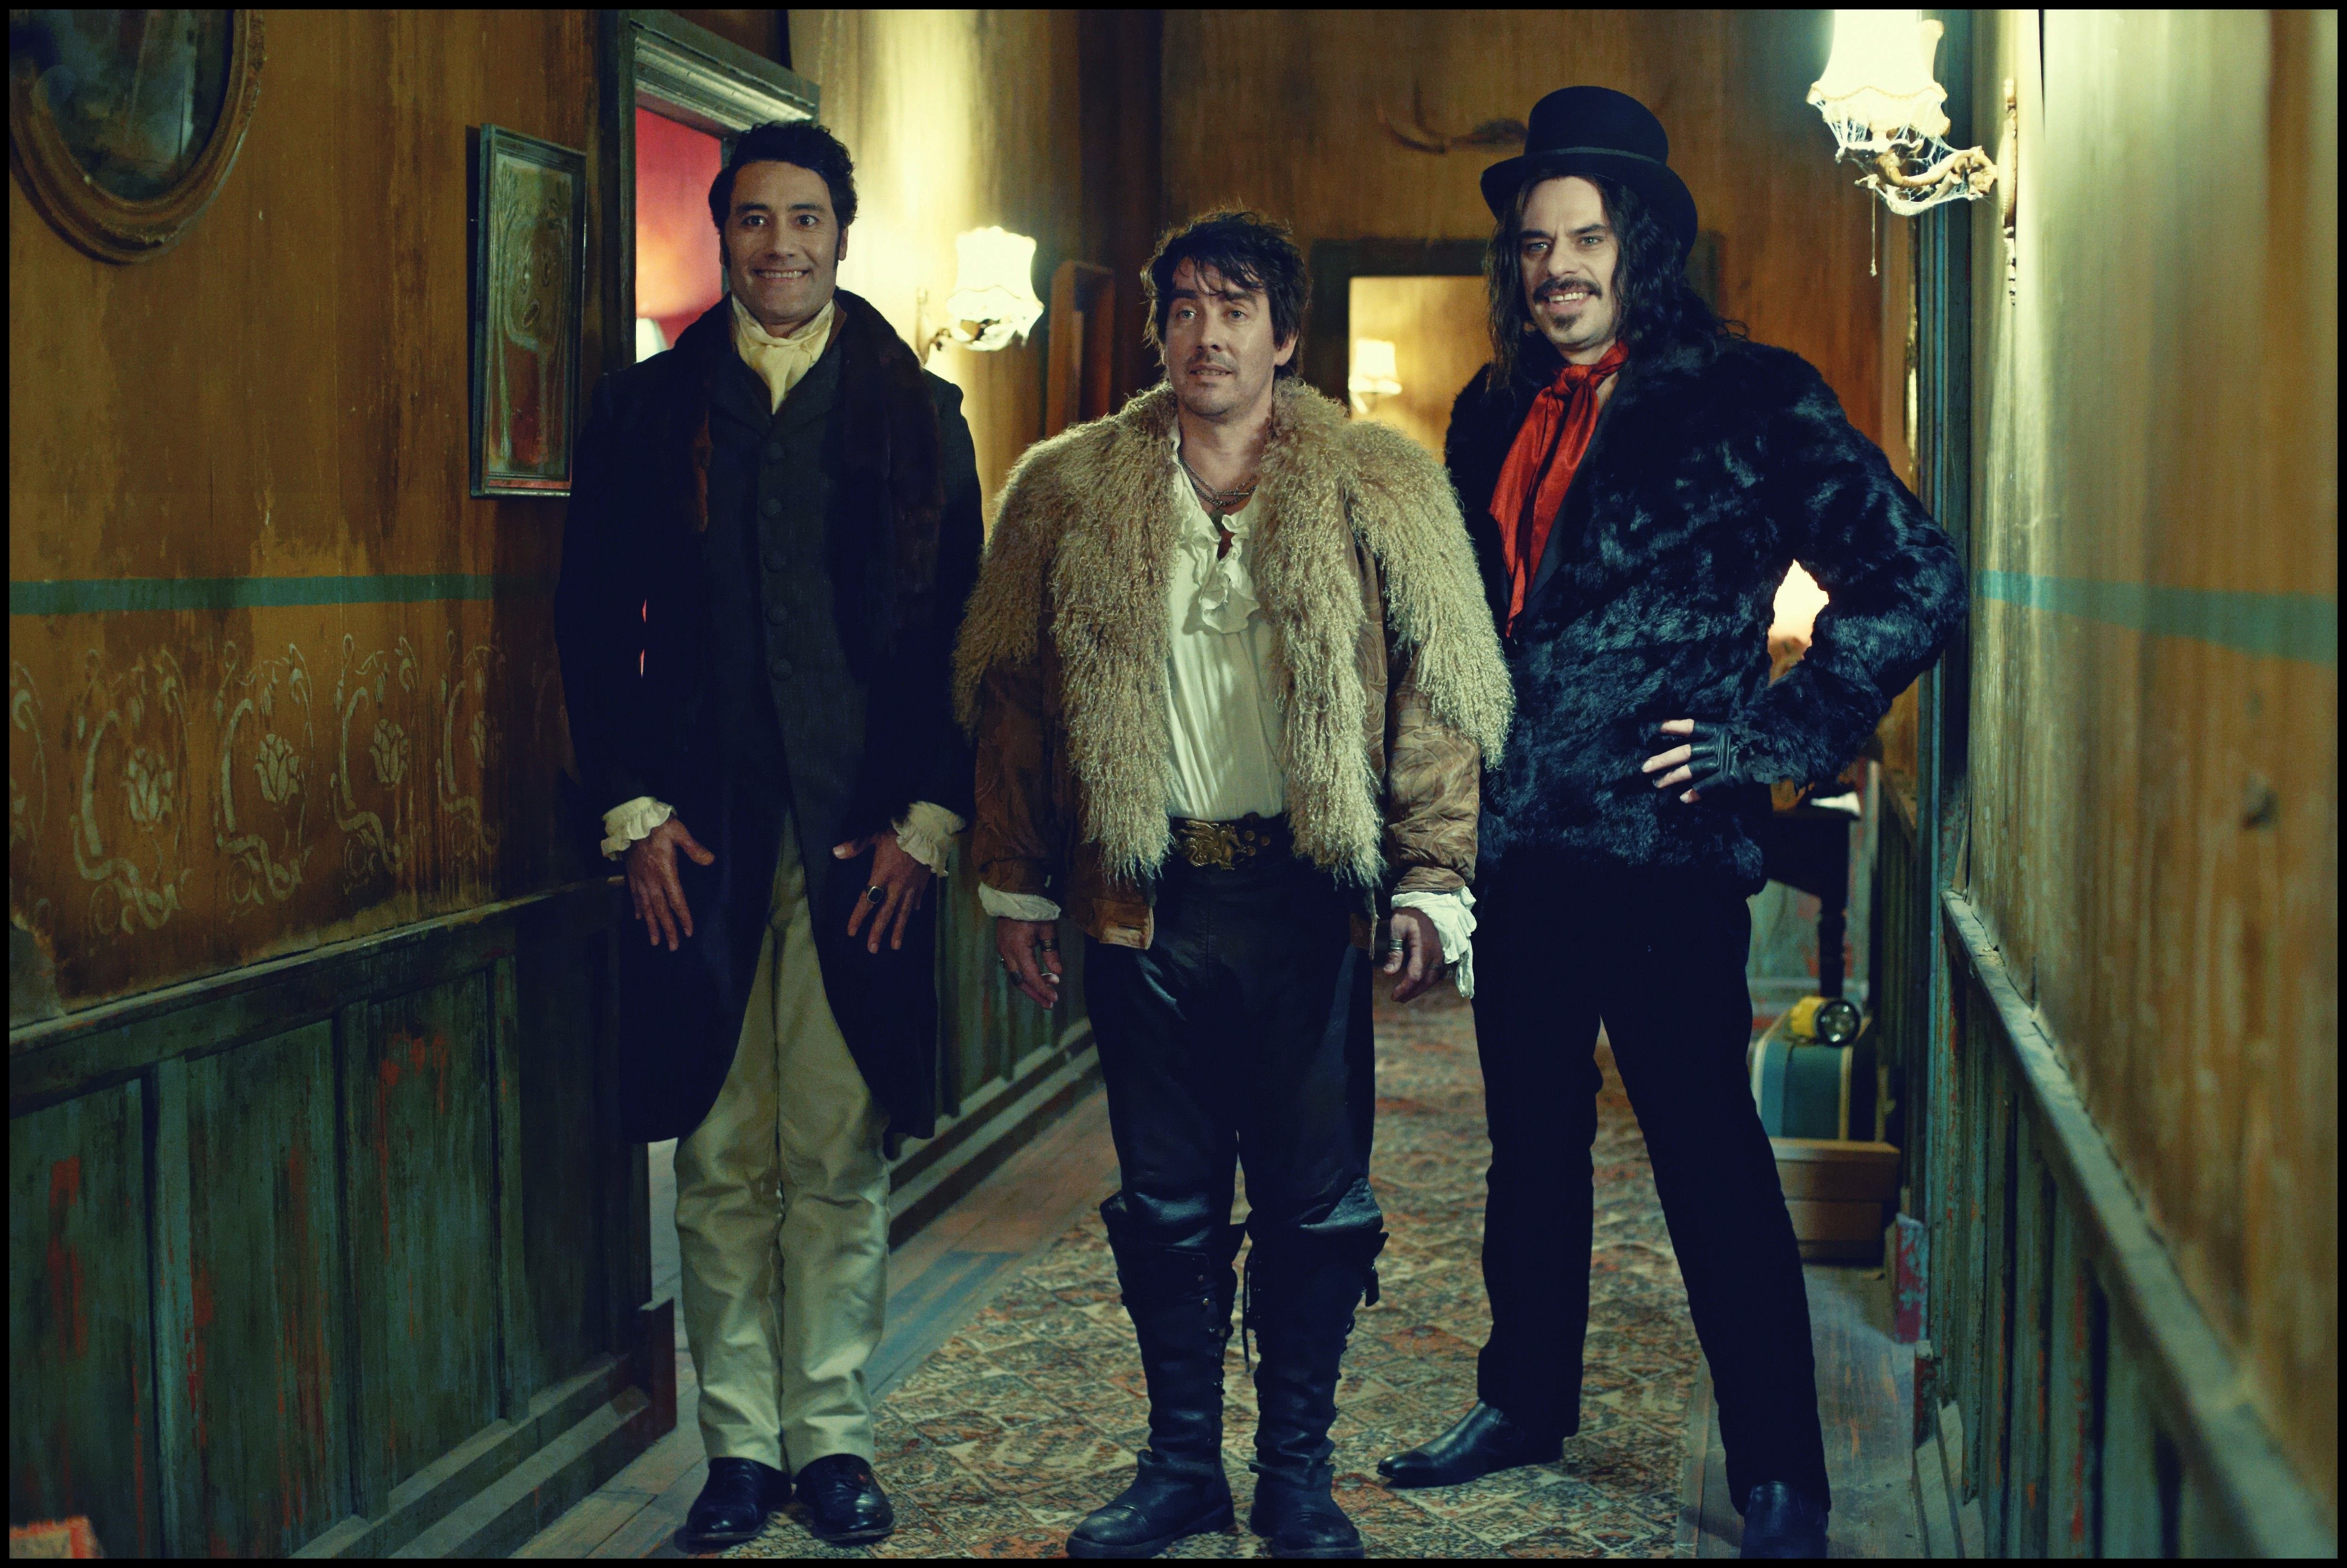 What we do in the shadows (2014) Halloween movies to